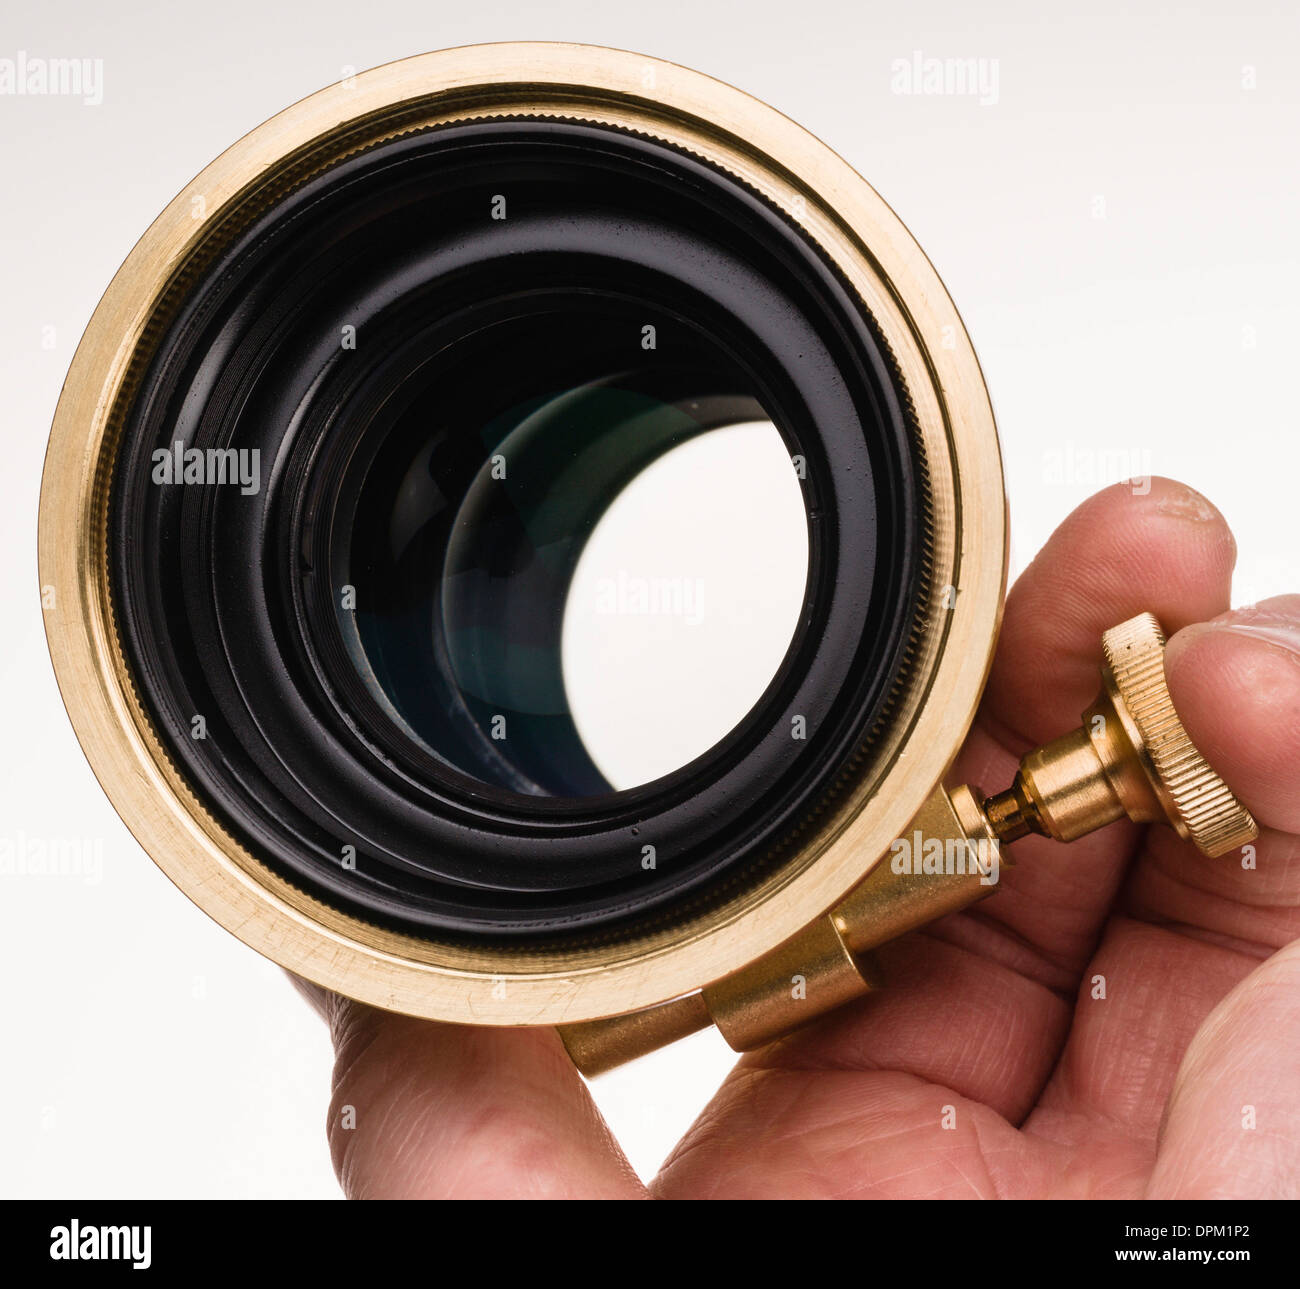 Lomography Petzval lens project - Kickstarter internet production run funded by orders. Replica of 1840 lens. - Stock Image